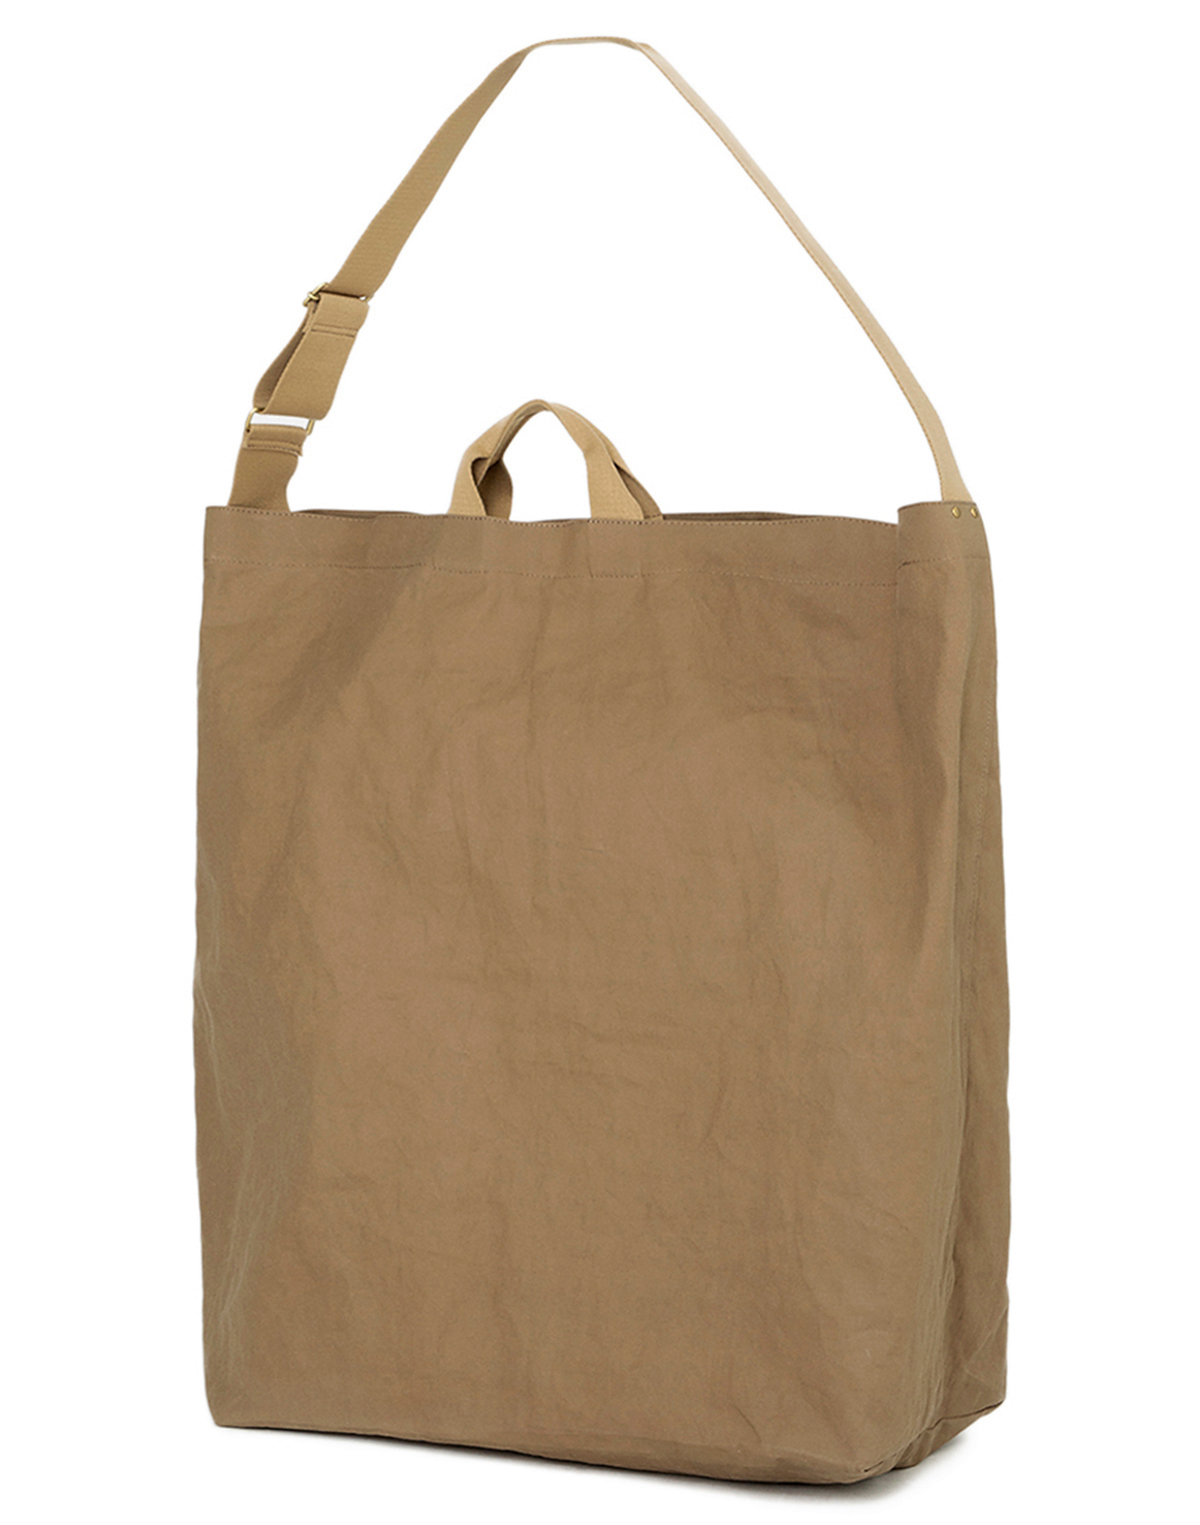 hobo×TRUCK Cotton Canvas Giant Tote Bag